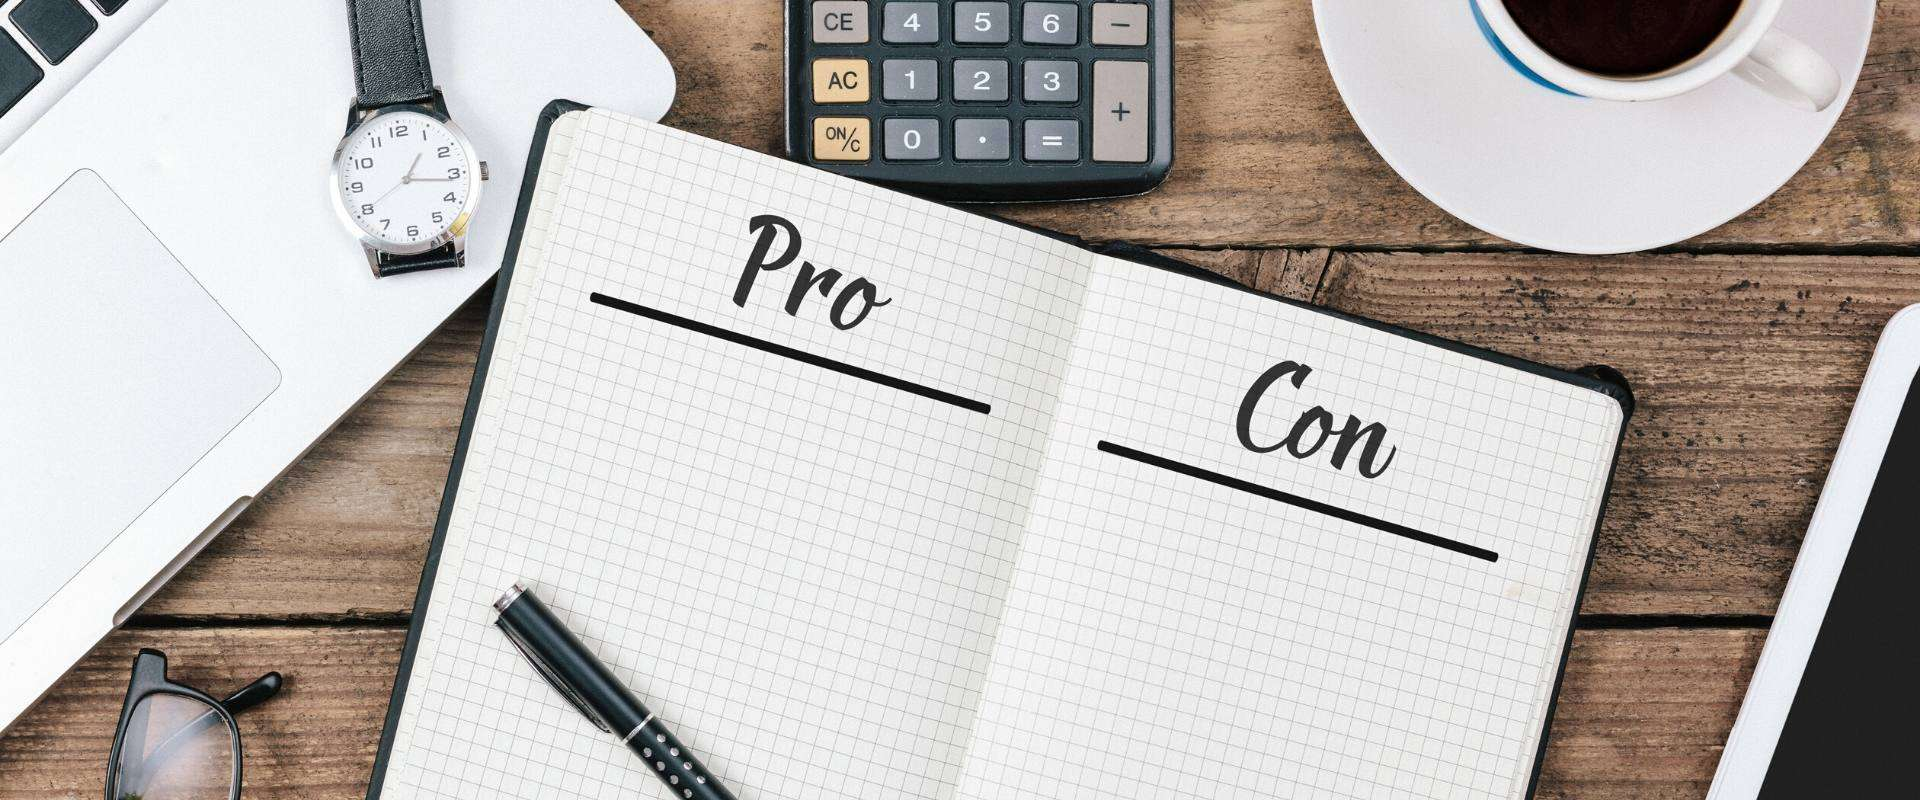 The Pros and Cons of PEO Companies